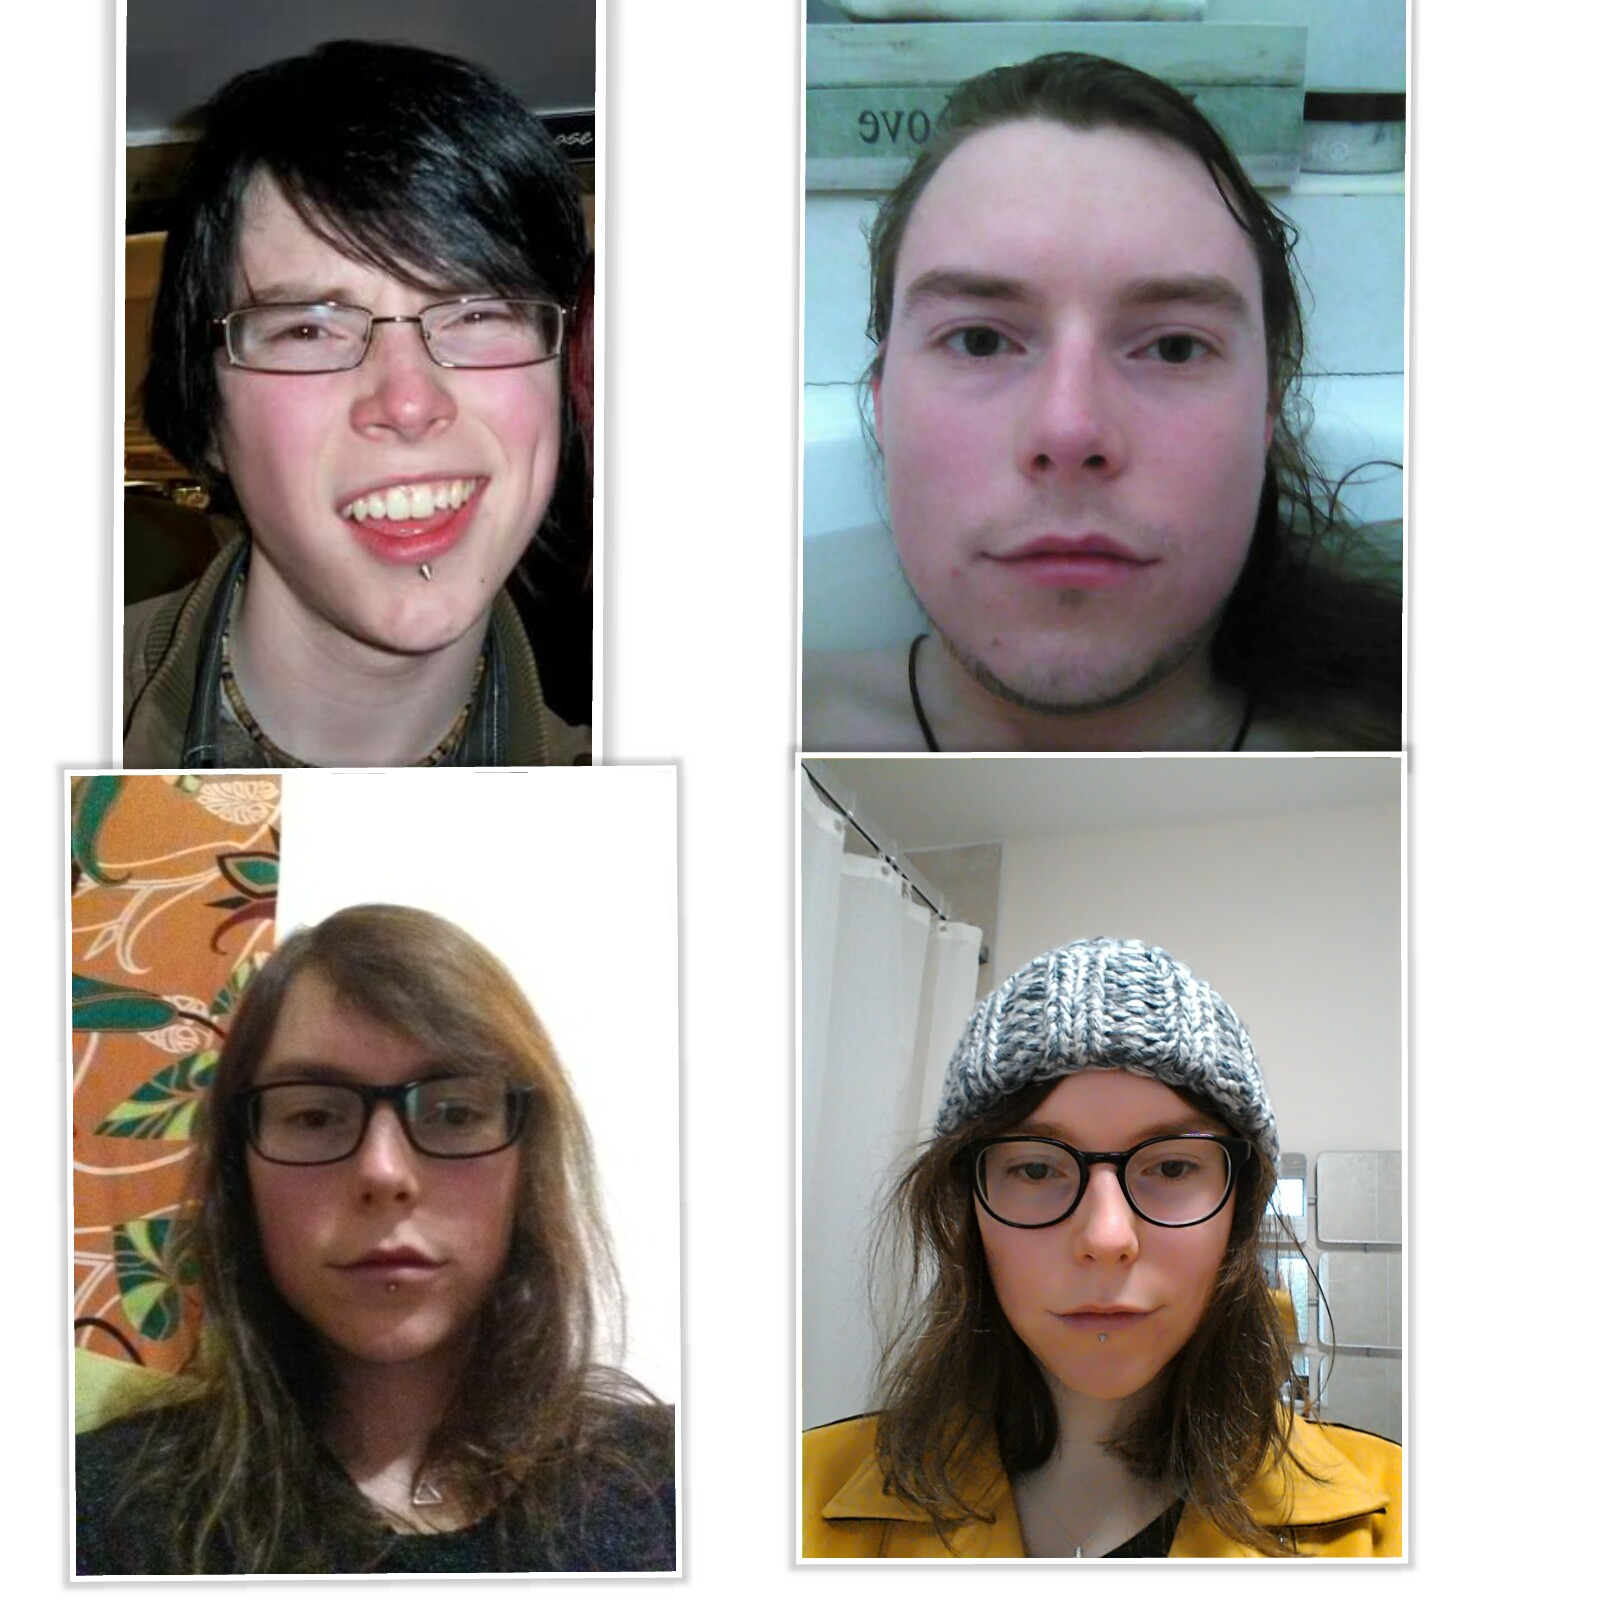 My transition so far, mtf, 7 months hrt and 27 years old. : lgbt